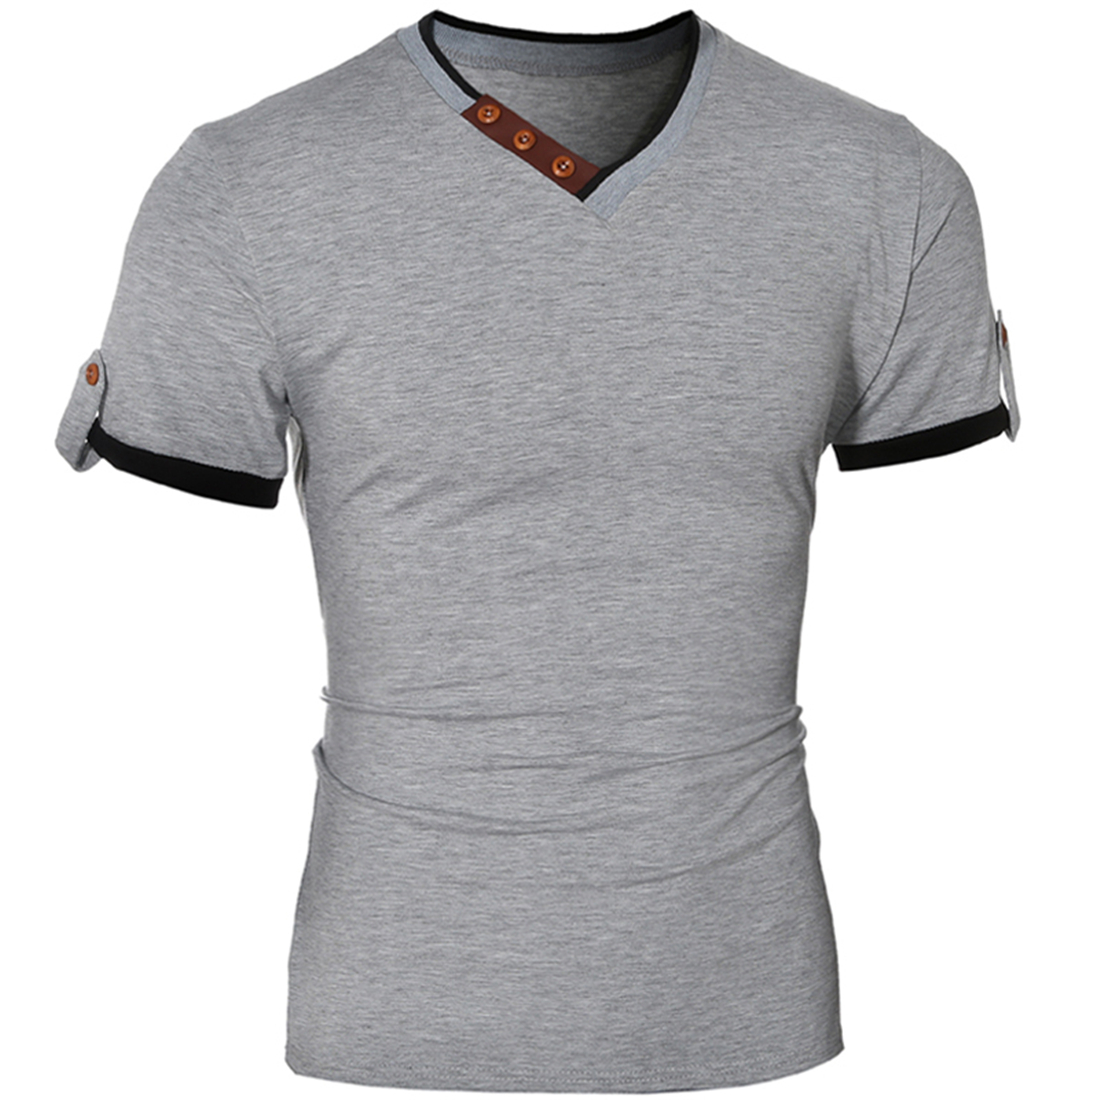 Compare Prices on Button up T Shirt- Online Shopping/Buy Low Price ...